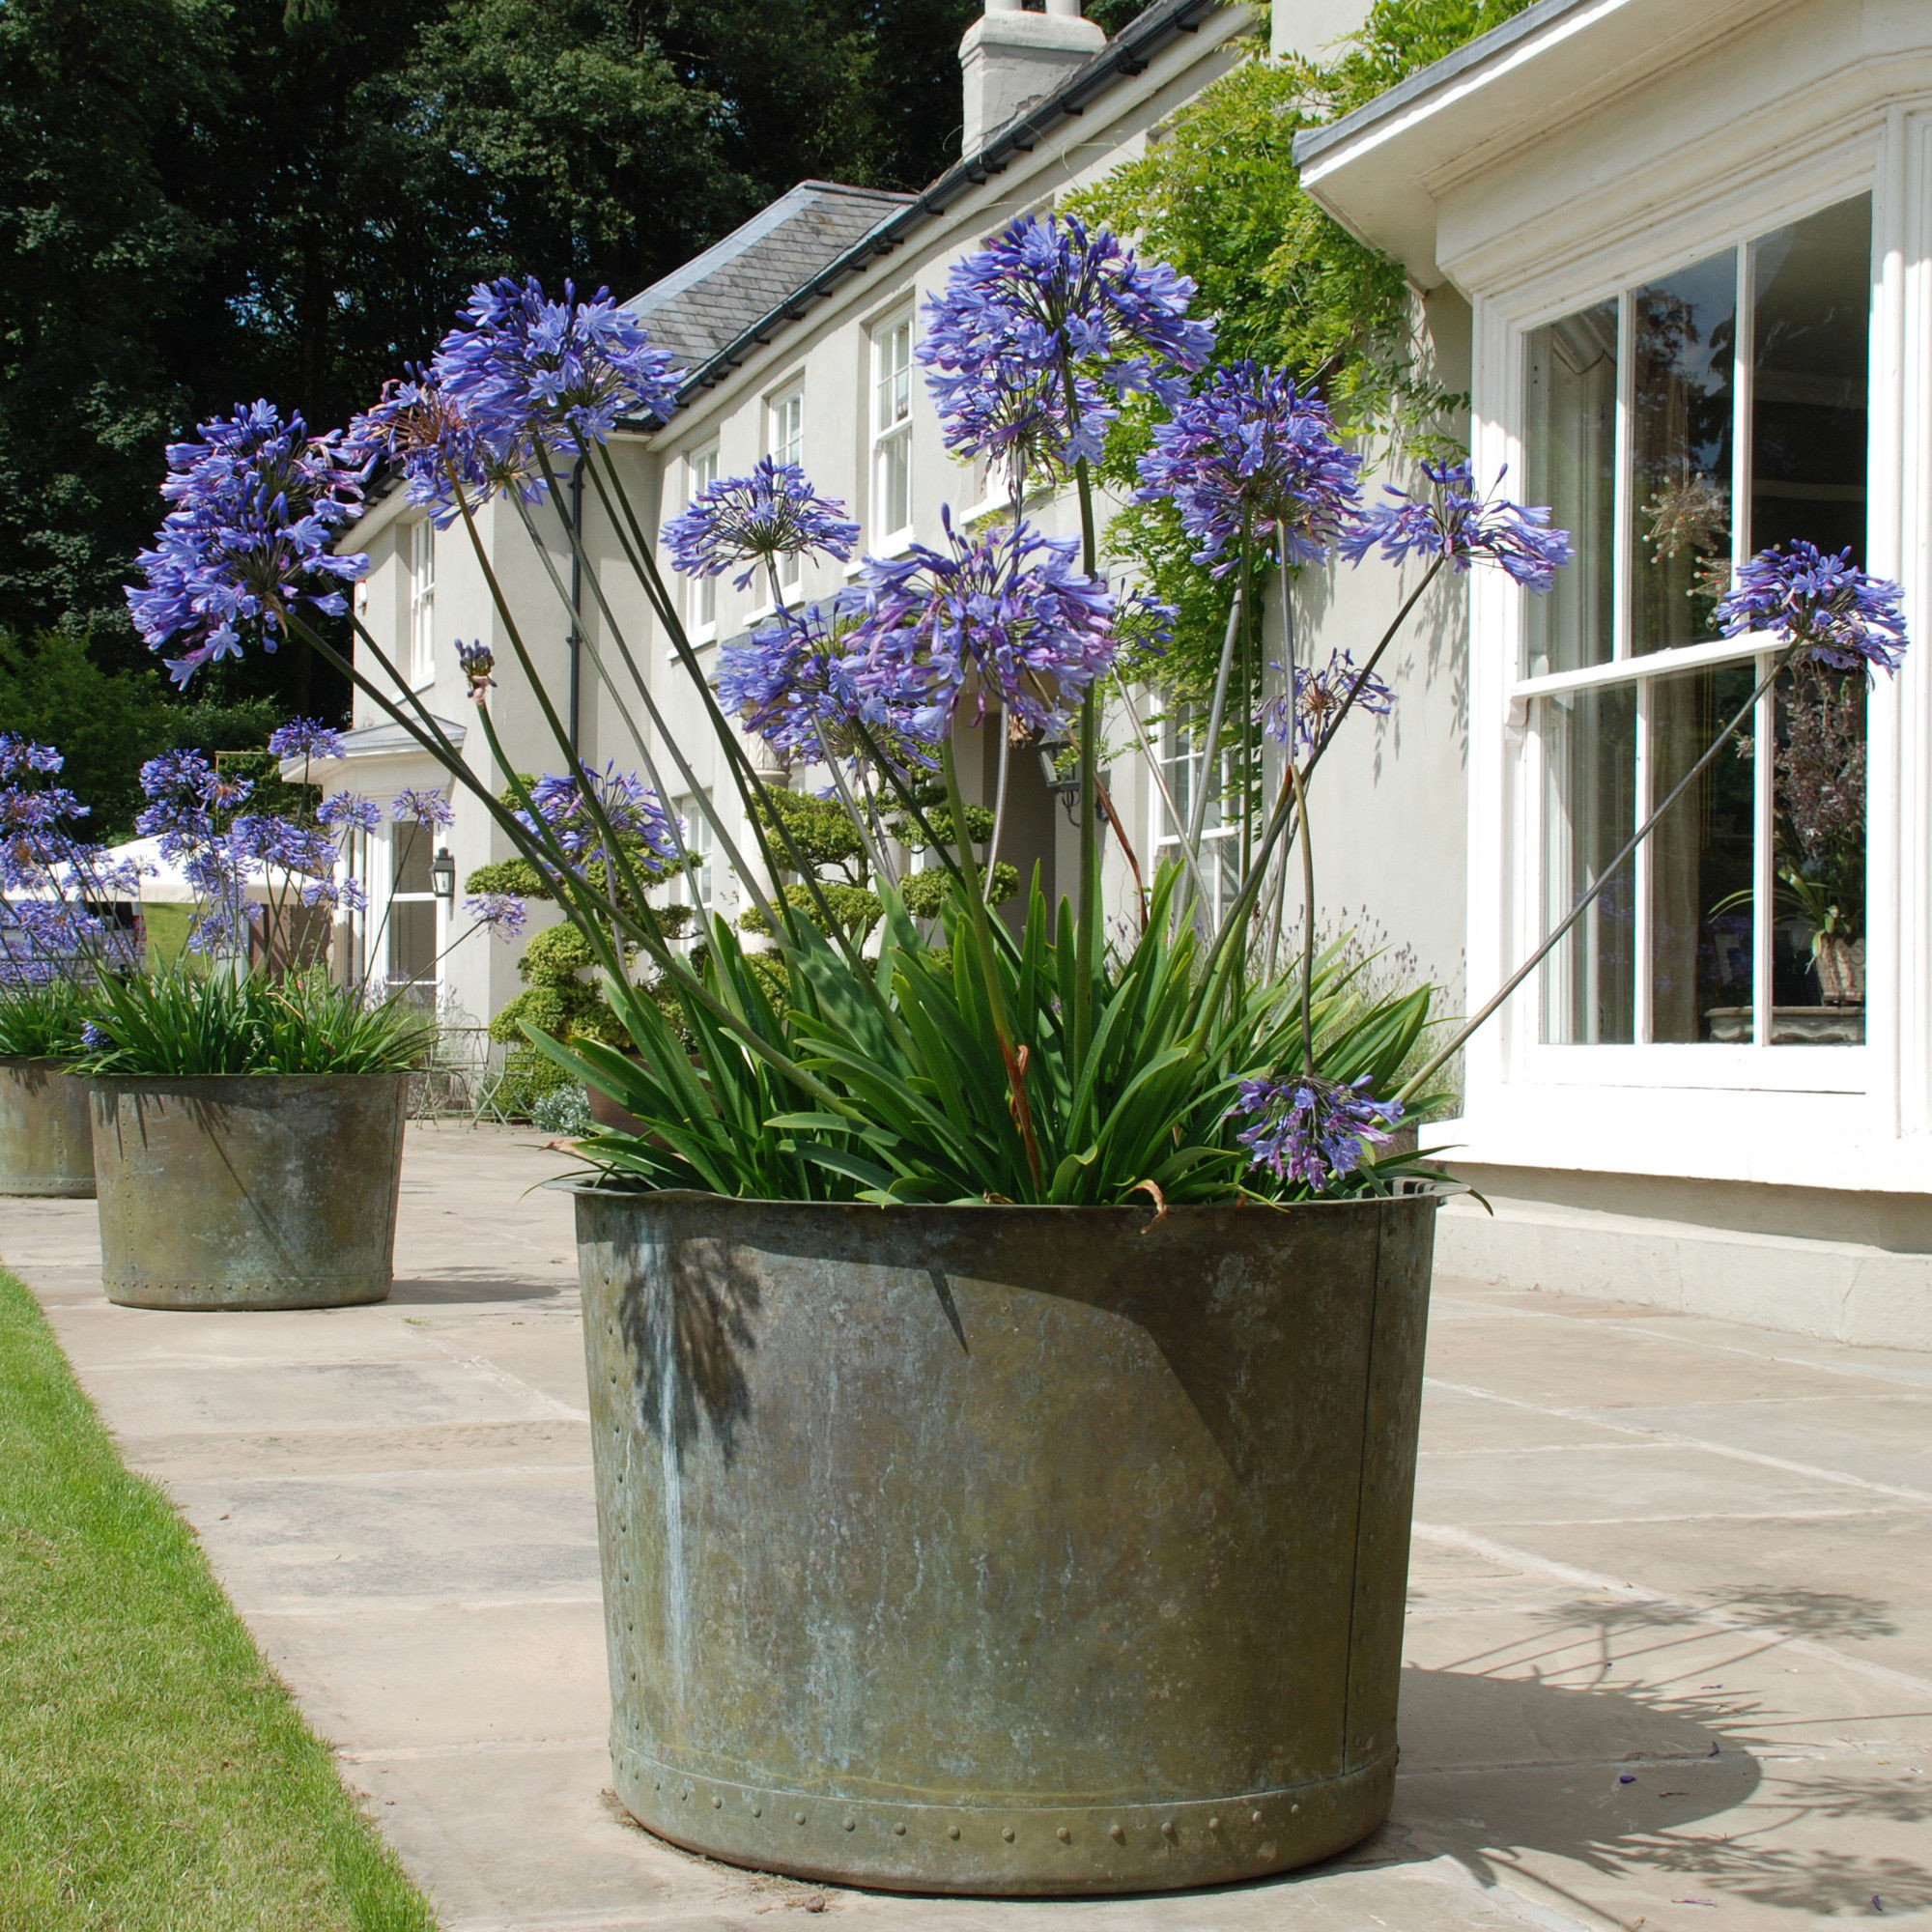 Best ideas about Large Outdoor Planters . Save or Pin The Circular Copper Garden Planter Architectural Now.